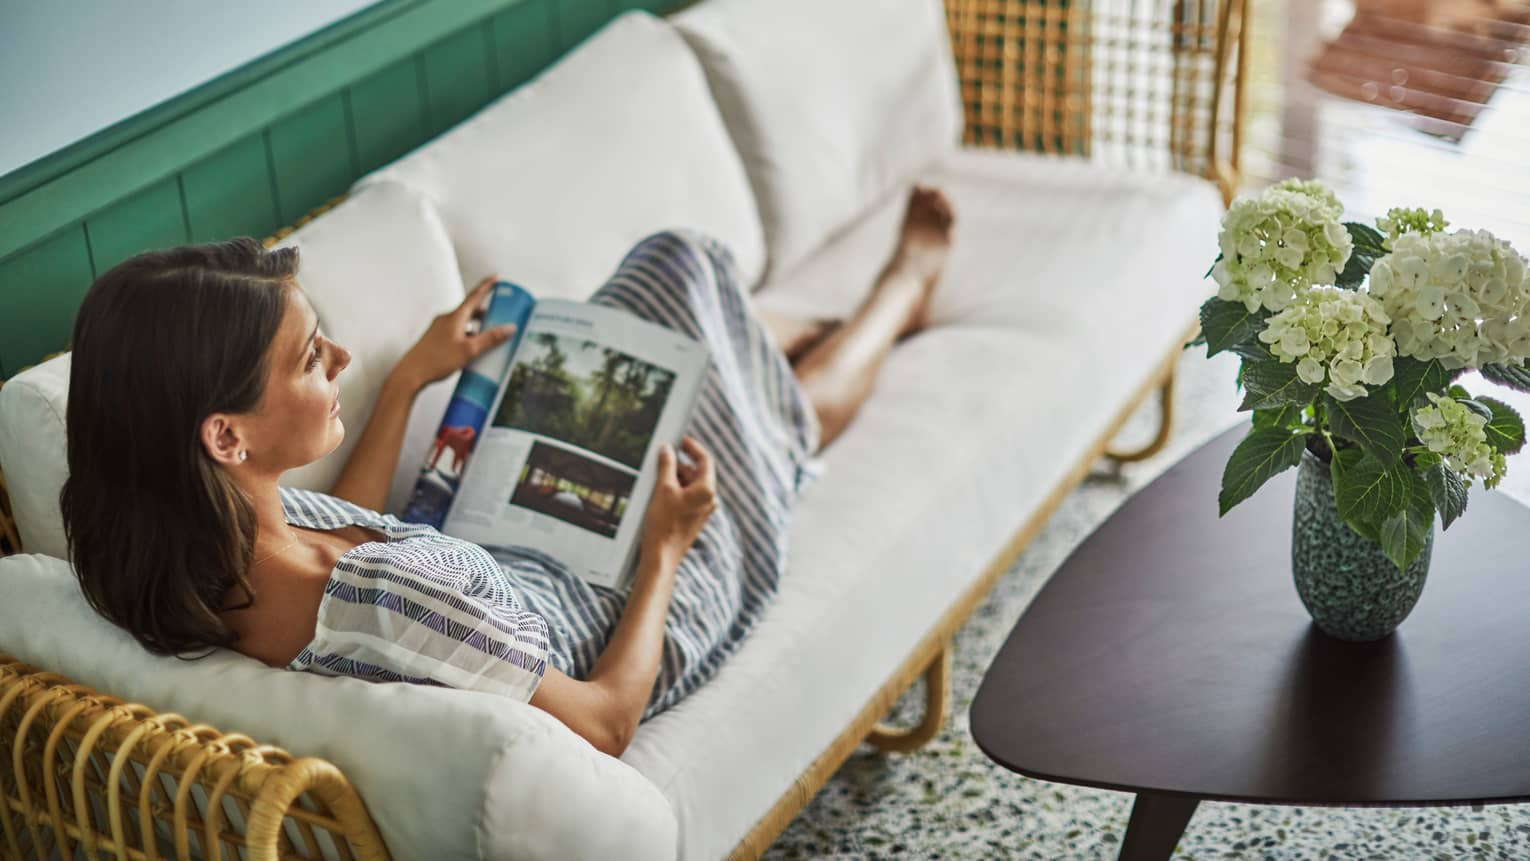 Private spa cabanas offer privacy. Woman stretches out on a sofa, reads magazine